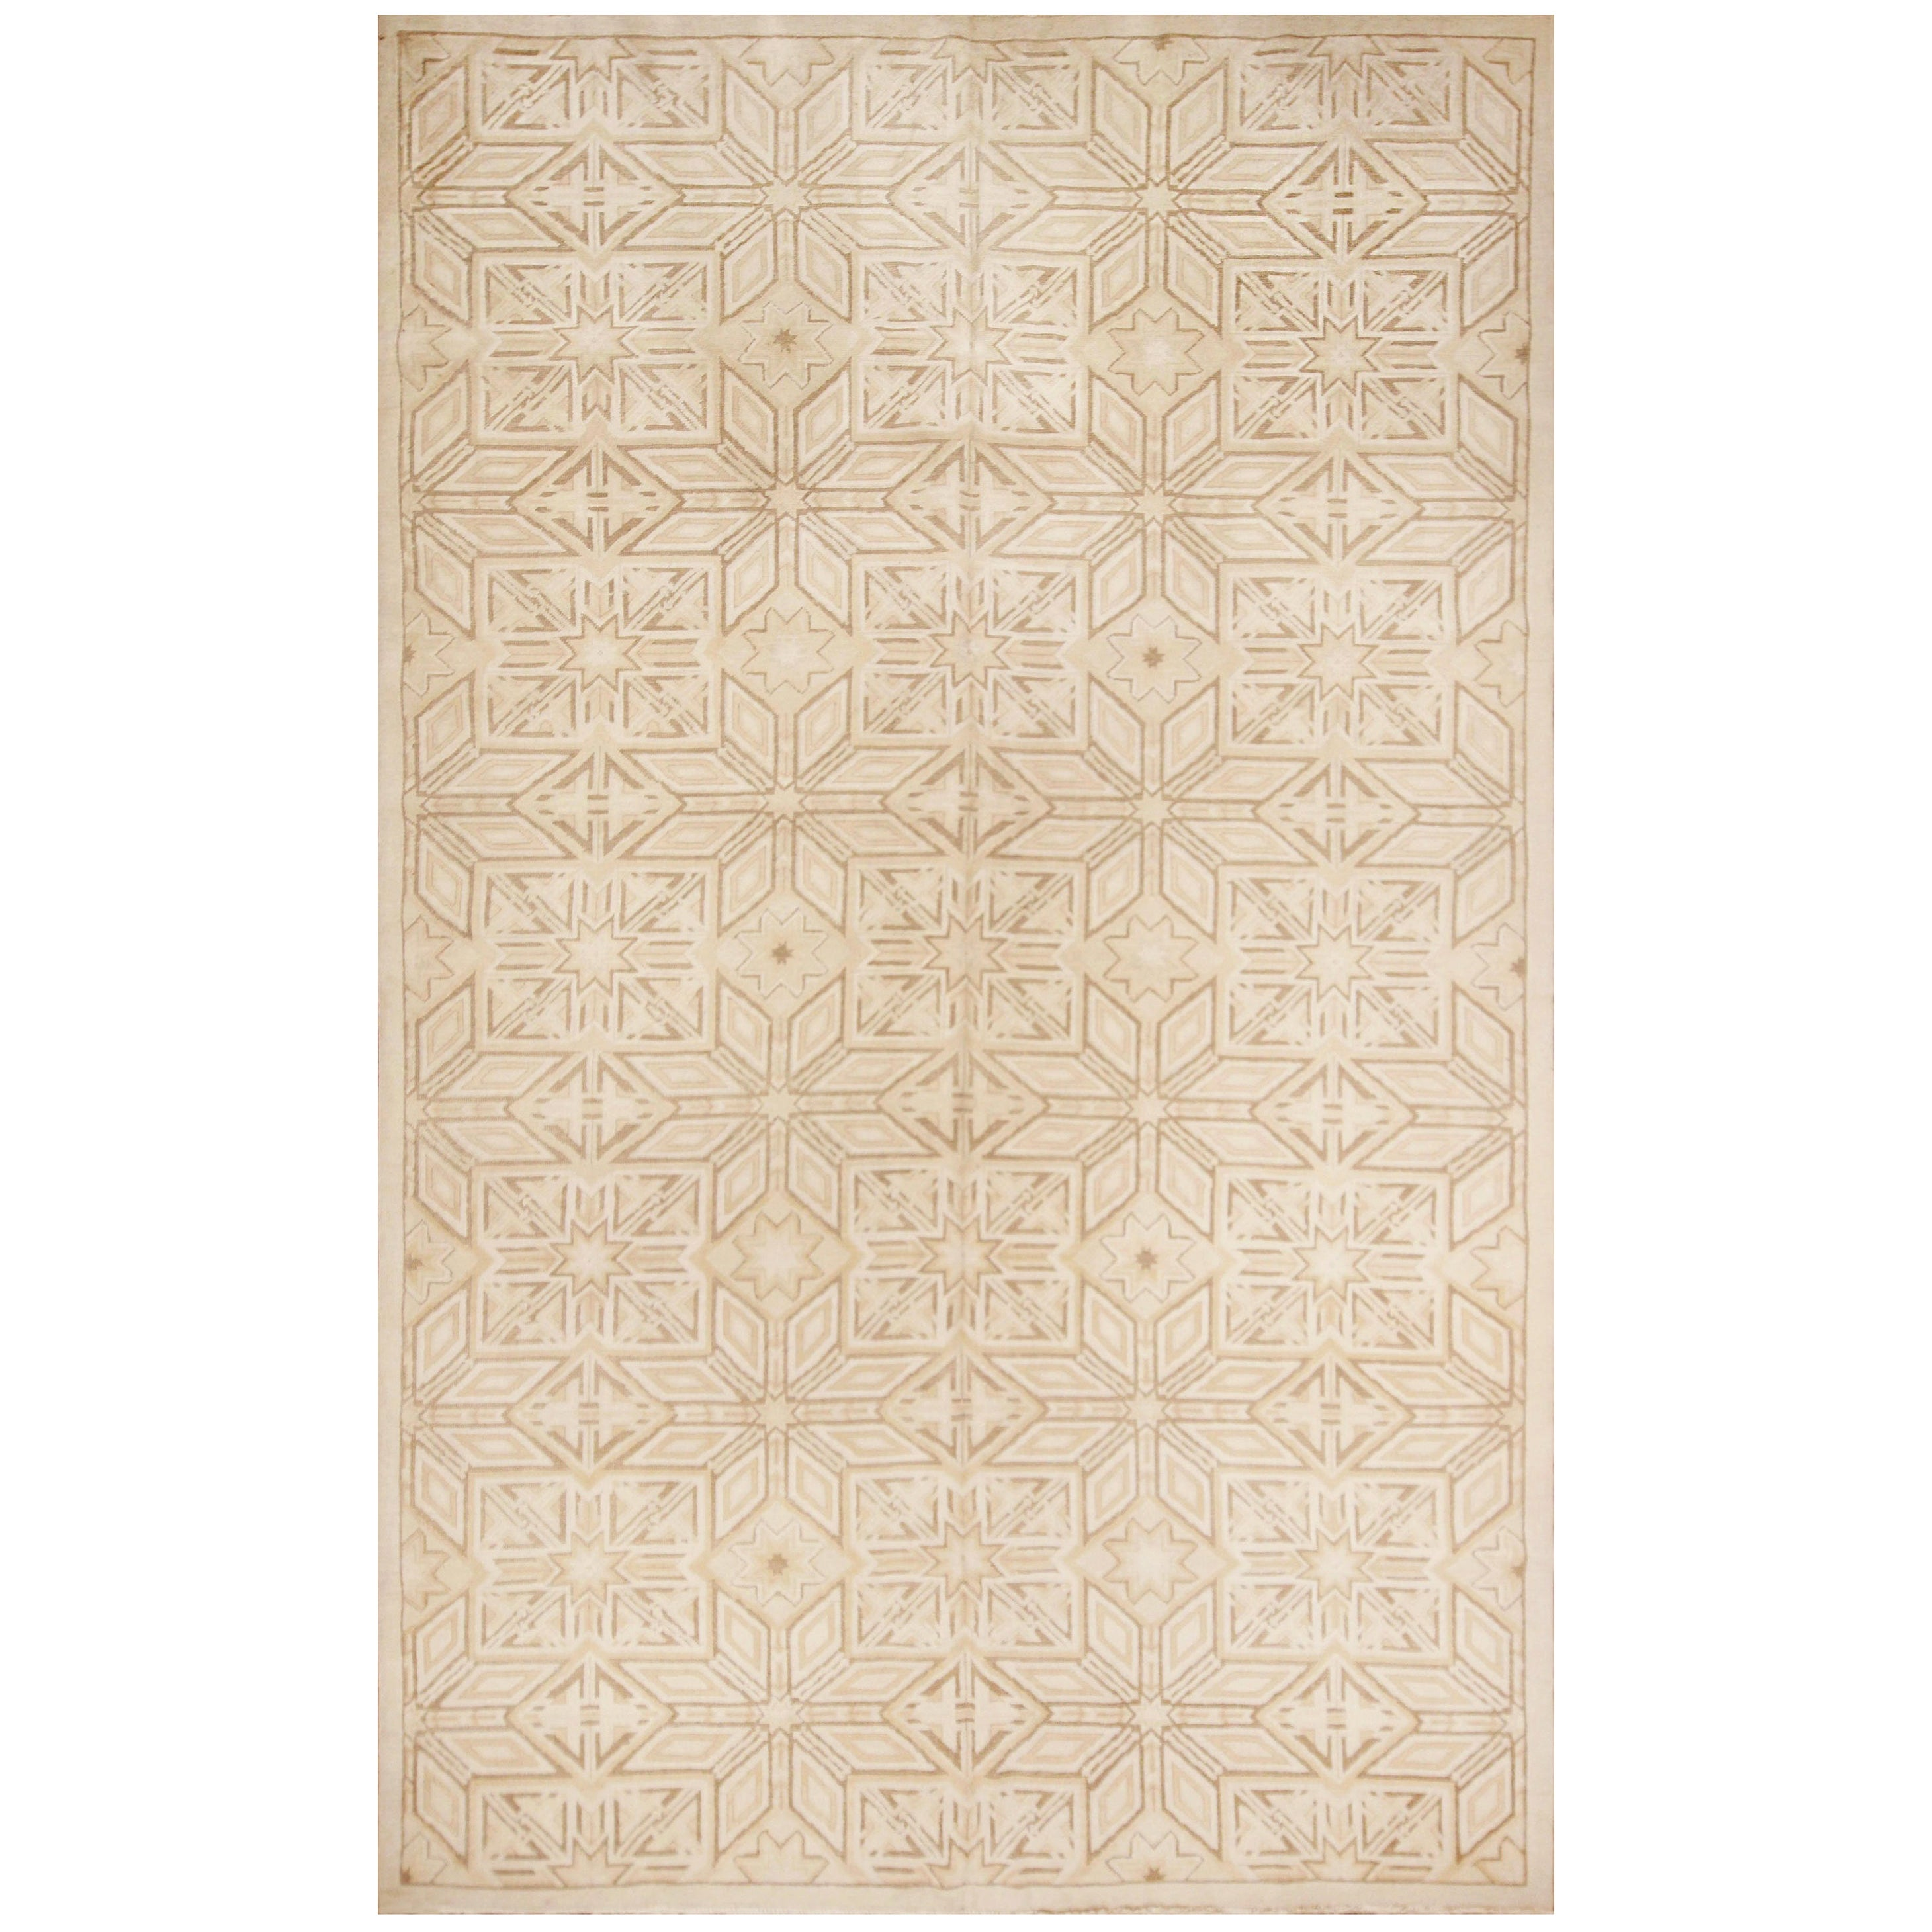 Contemporary Flat-Weave and Pile Wool Rug in Beige Geometric Pattern